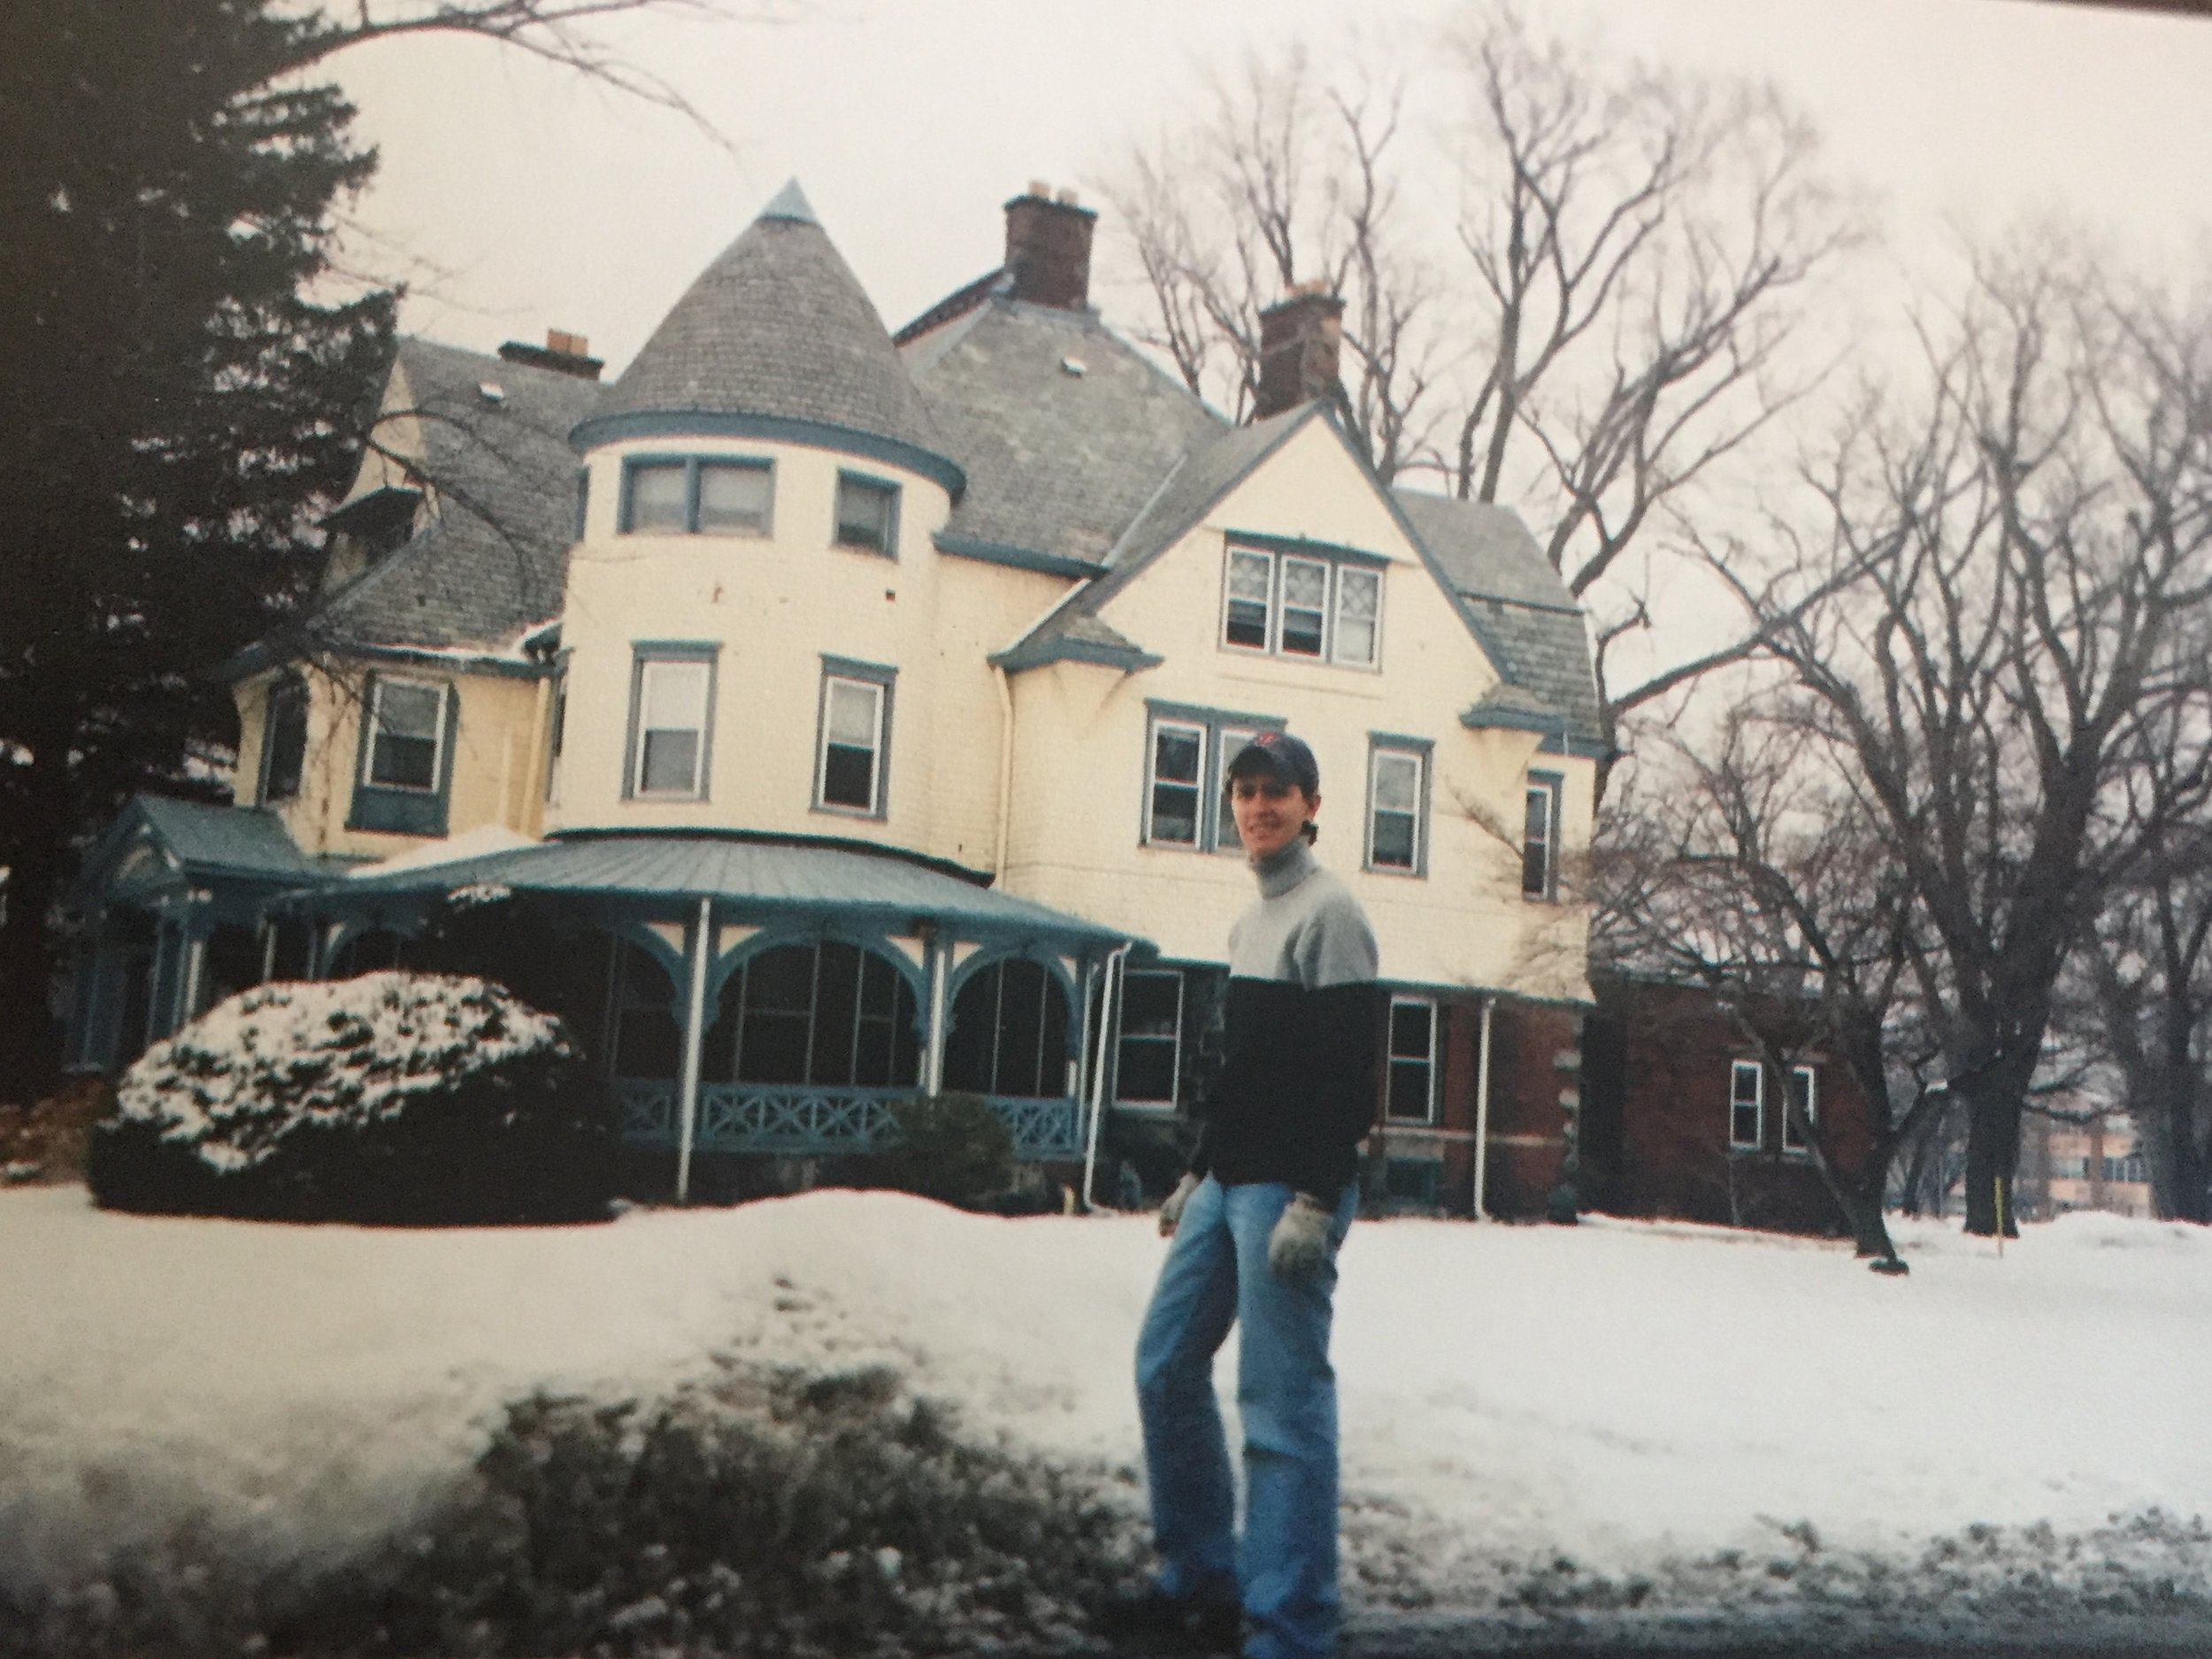 This is the convent where I lived. My room was the cool round one on the third floor. Full disclosure - I am wearing a Boston Red Sox hat, because I've always had a soft spot for the Red Sox. But not the Patriots. Let's be clear..